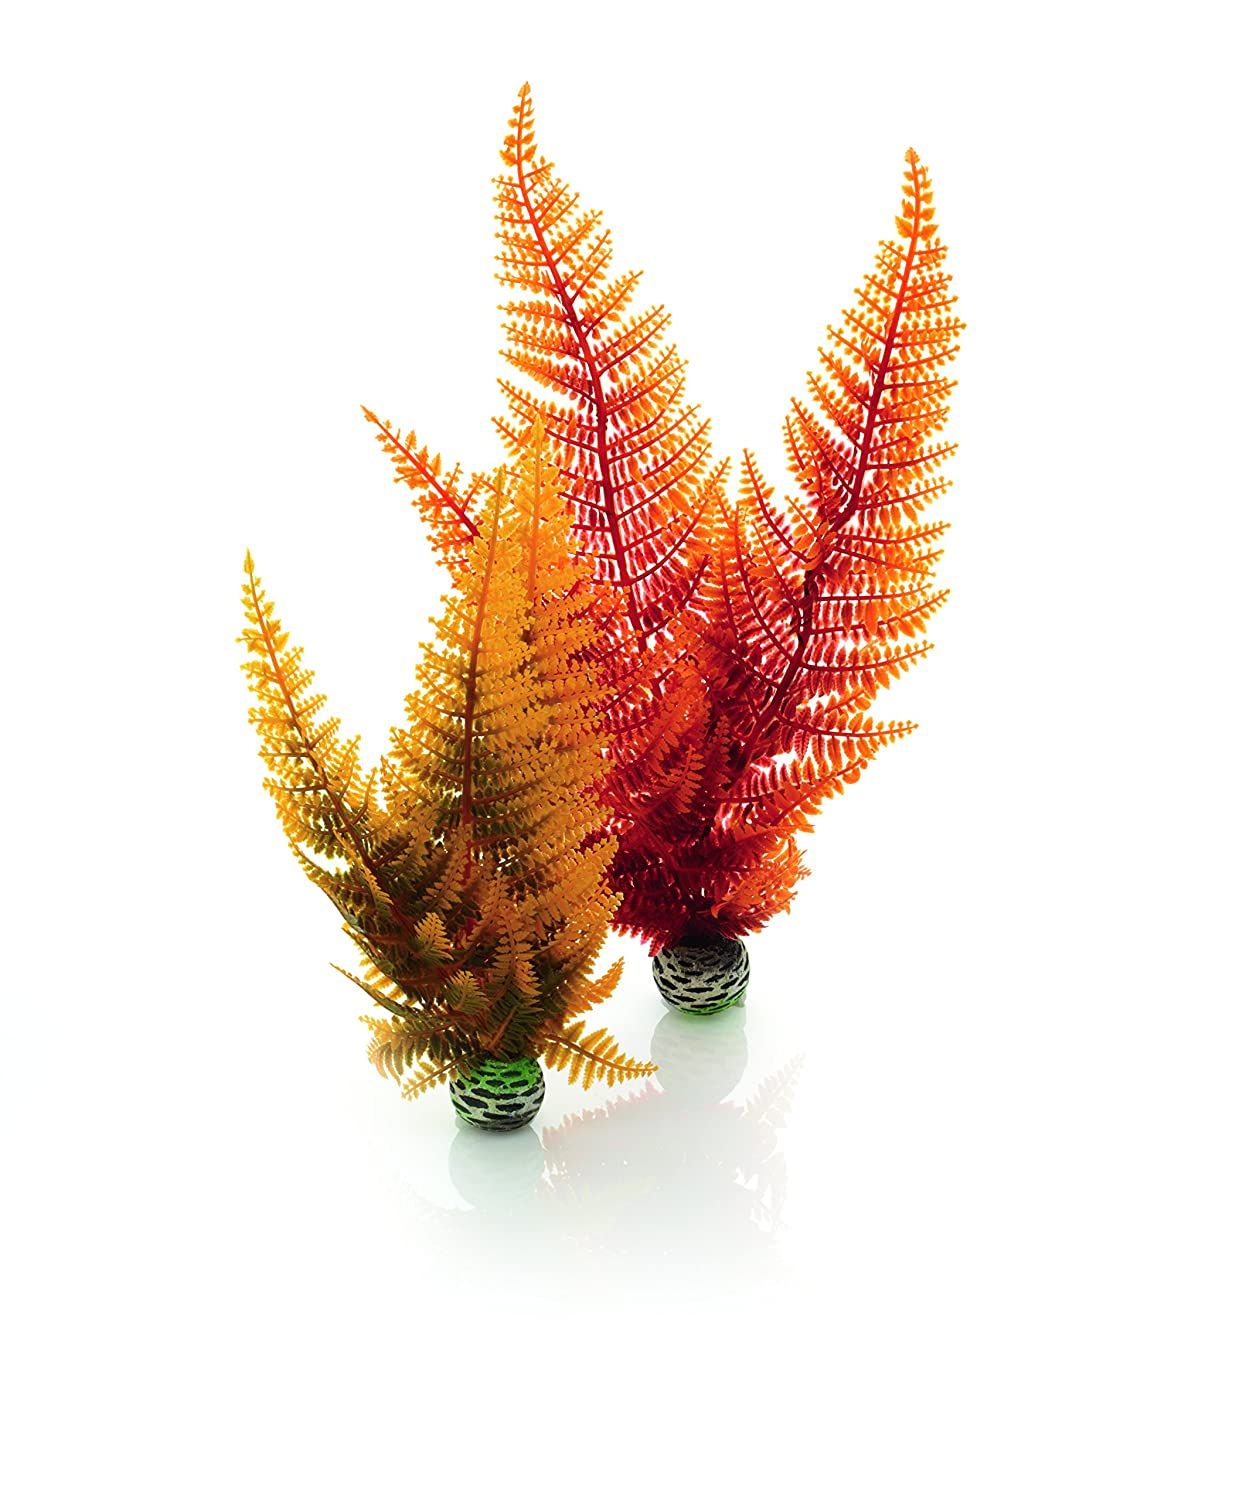 (Medium, Autumn Fern) biOrb Easy Plant Sets